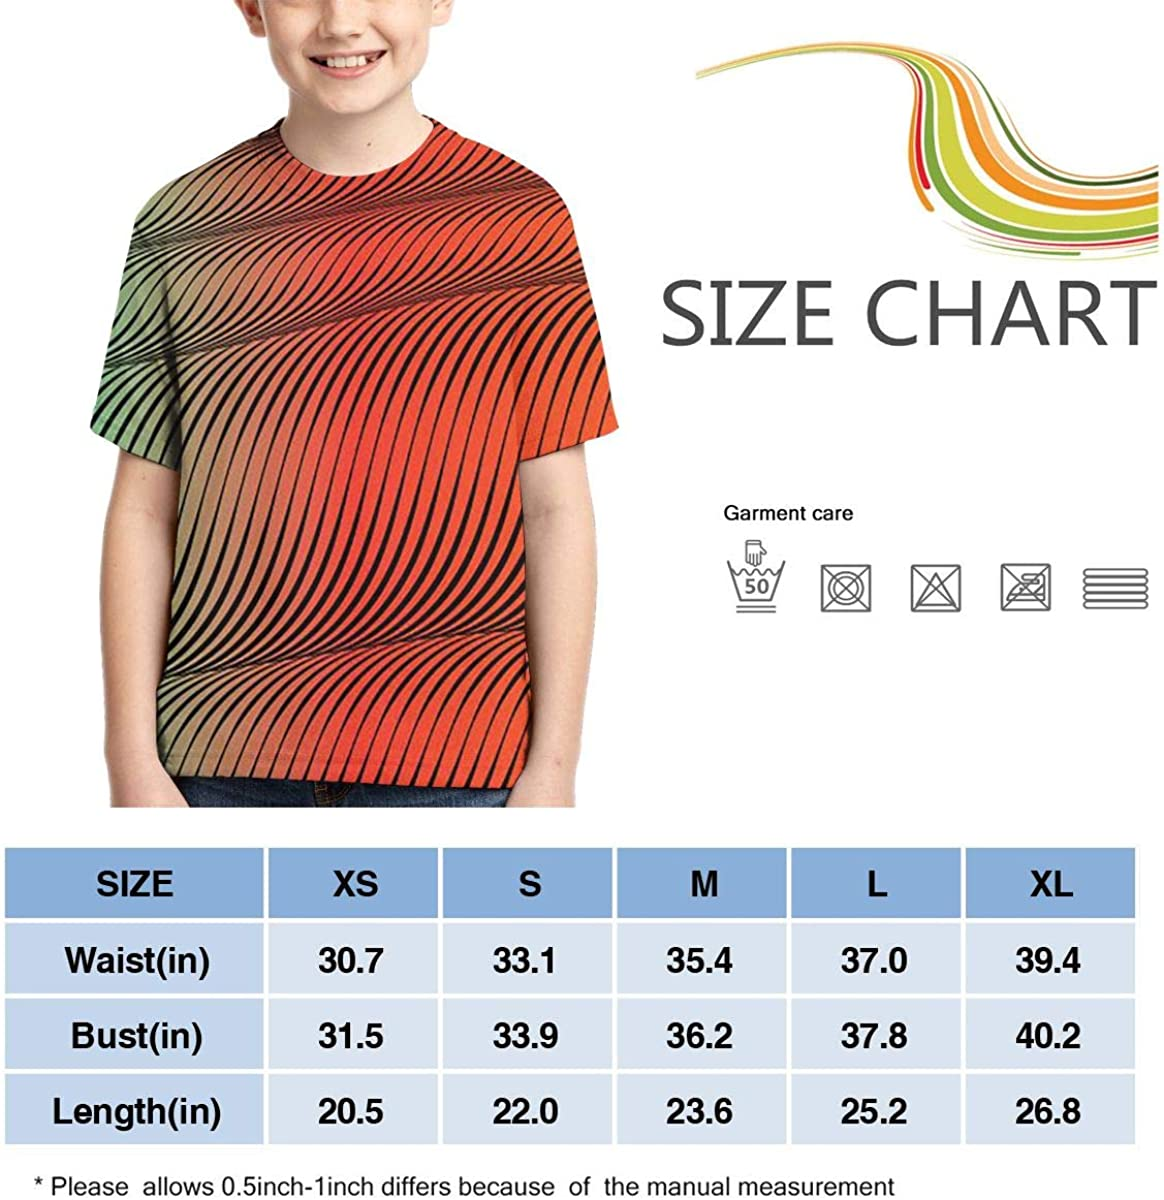 MSMM Boys Border Scroll Geometric Wavy Watercolor Line T-Shirts Youth Kids Short Sleeve Active Sports Top Tee